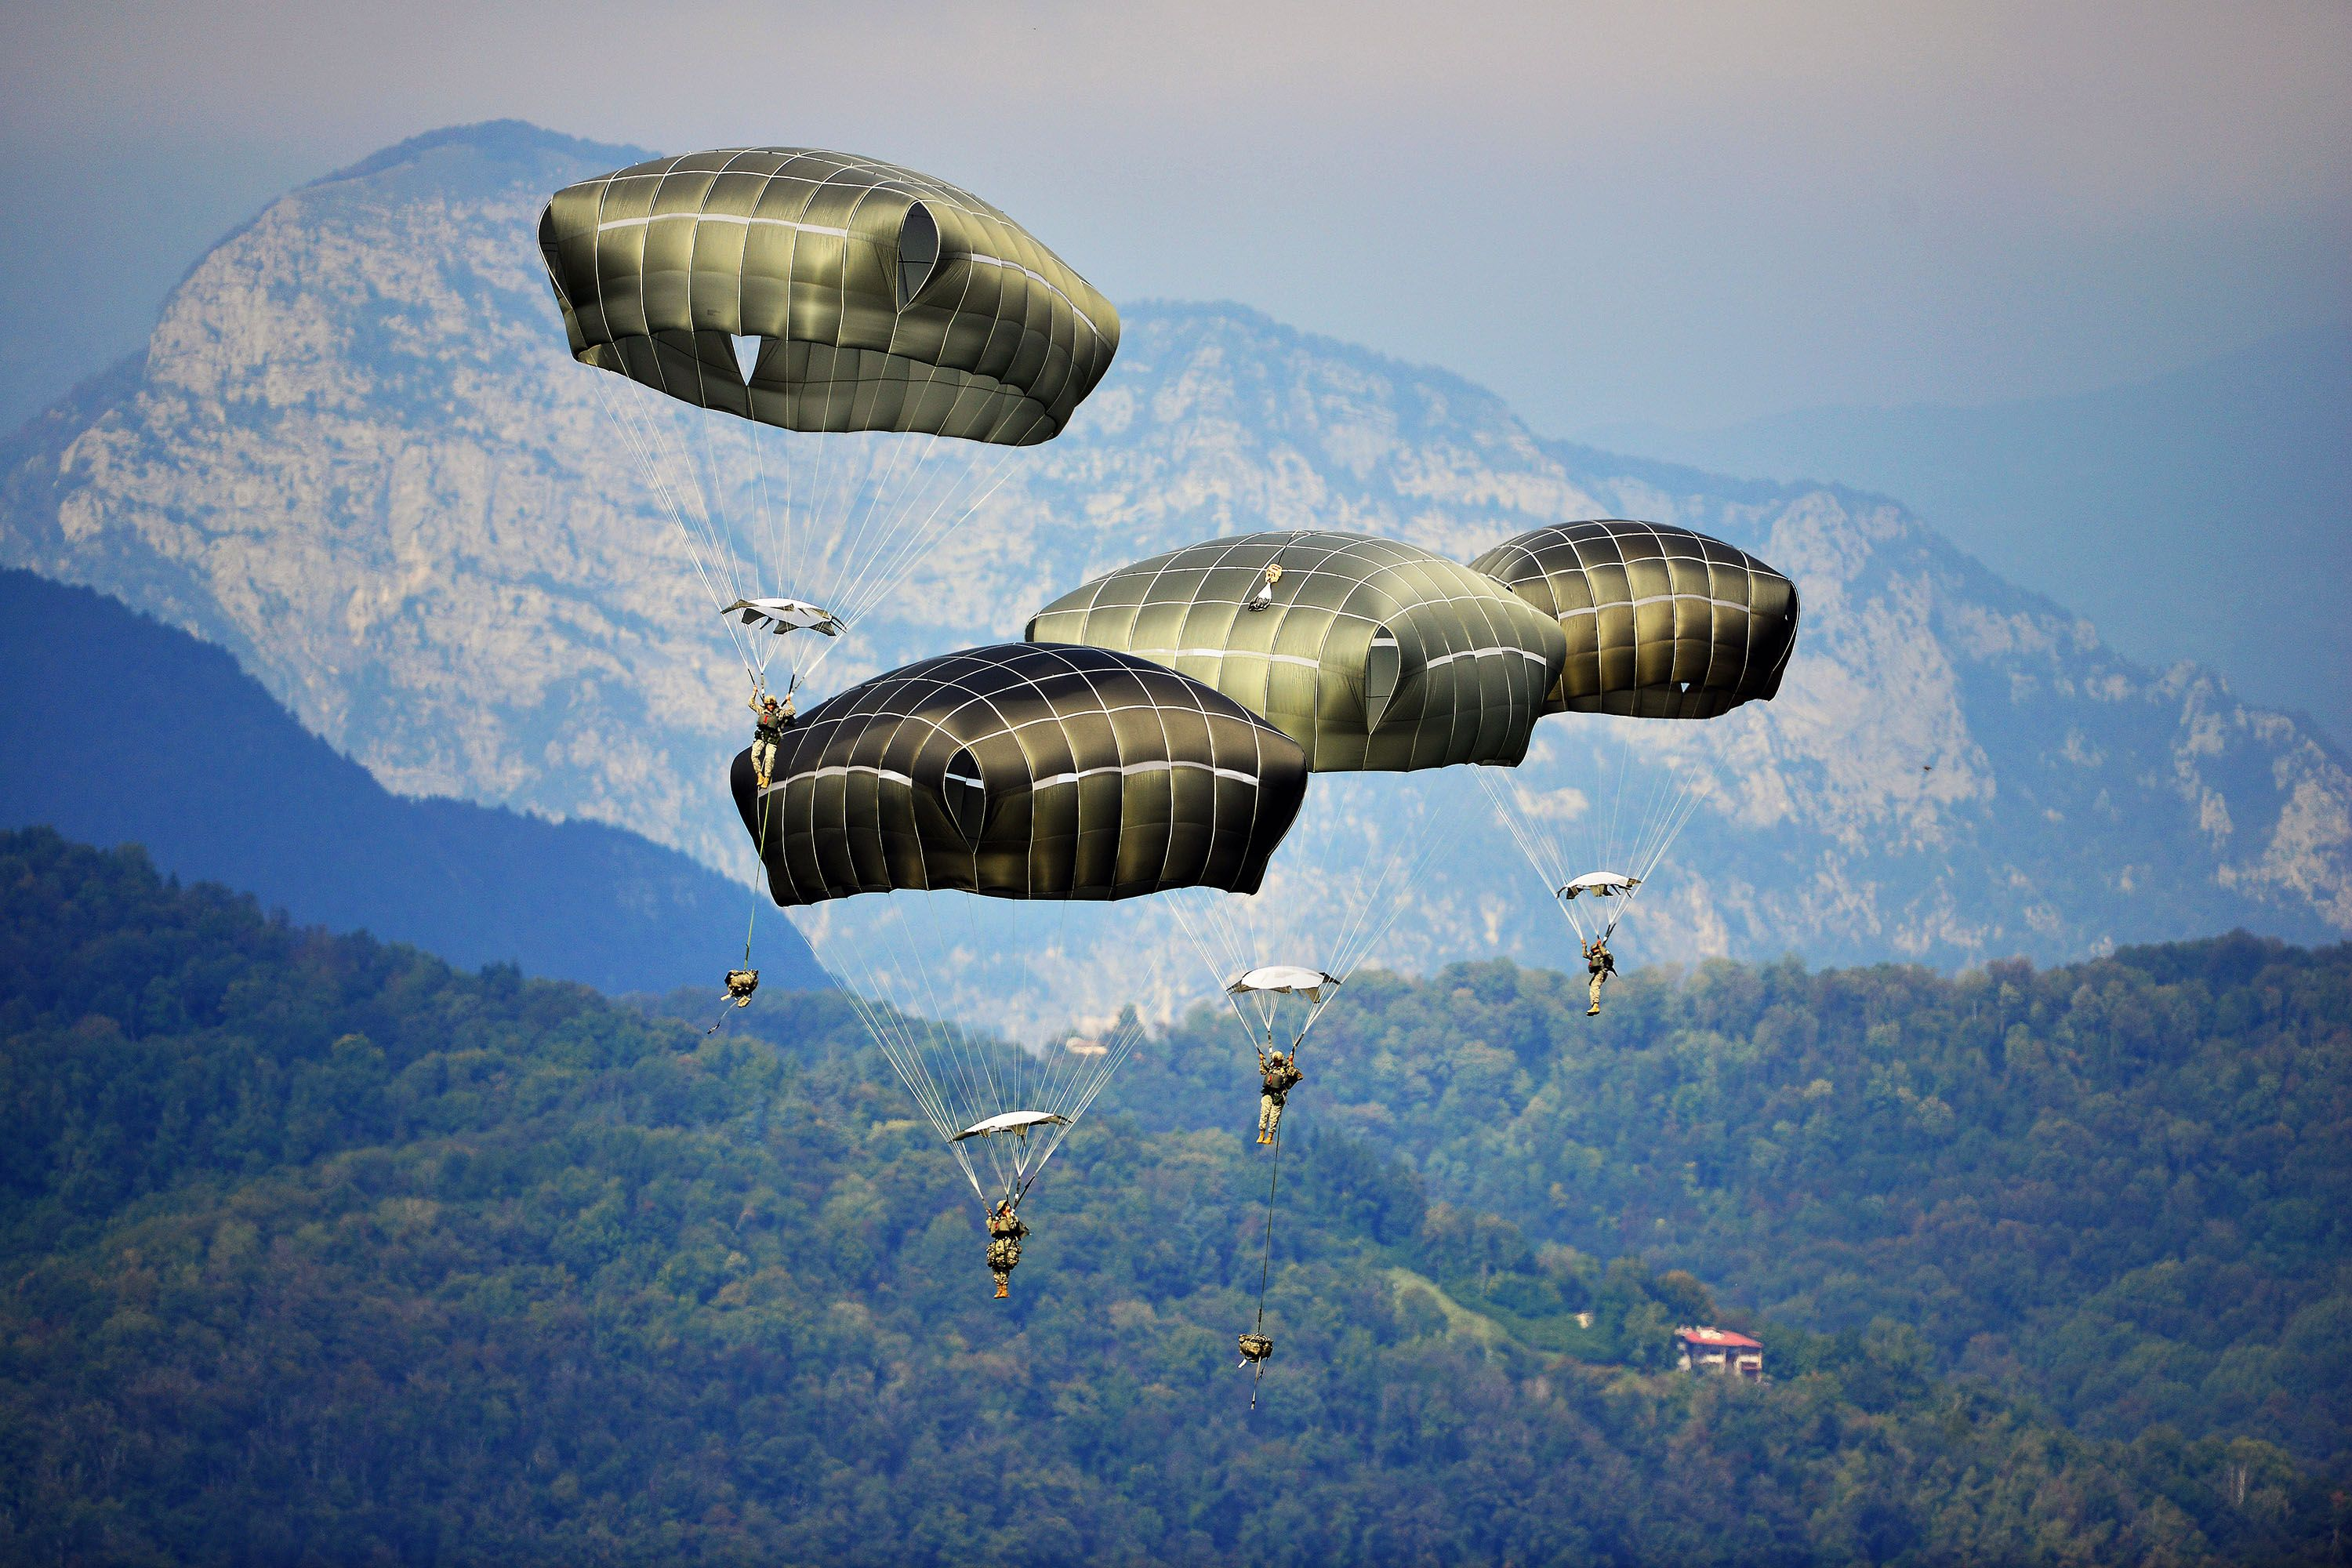 US Army – Airborne Operation at Juliet Drop Zone in Pordenone, Italy